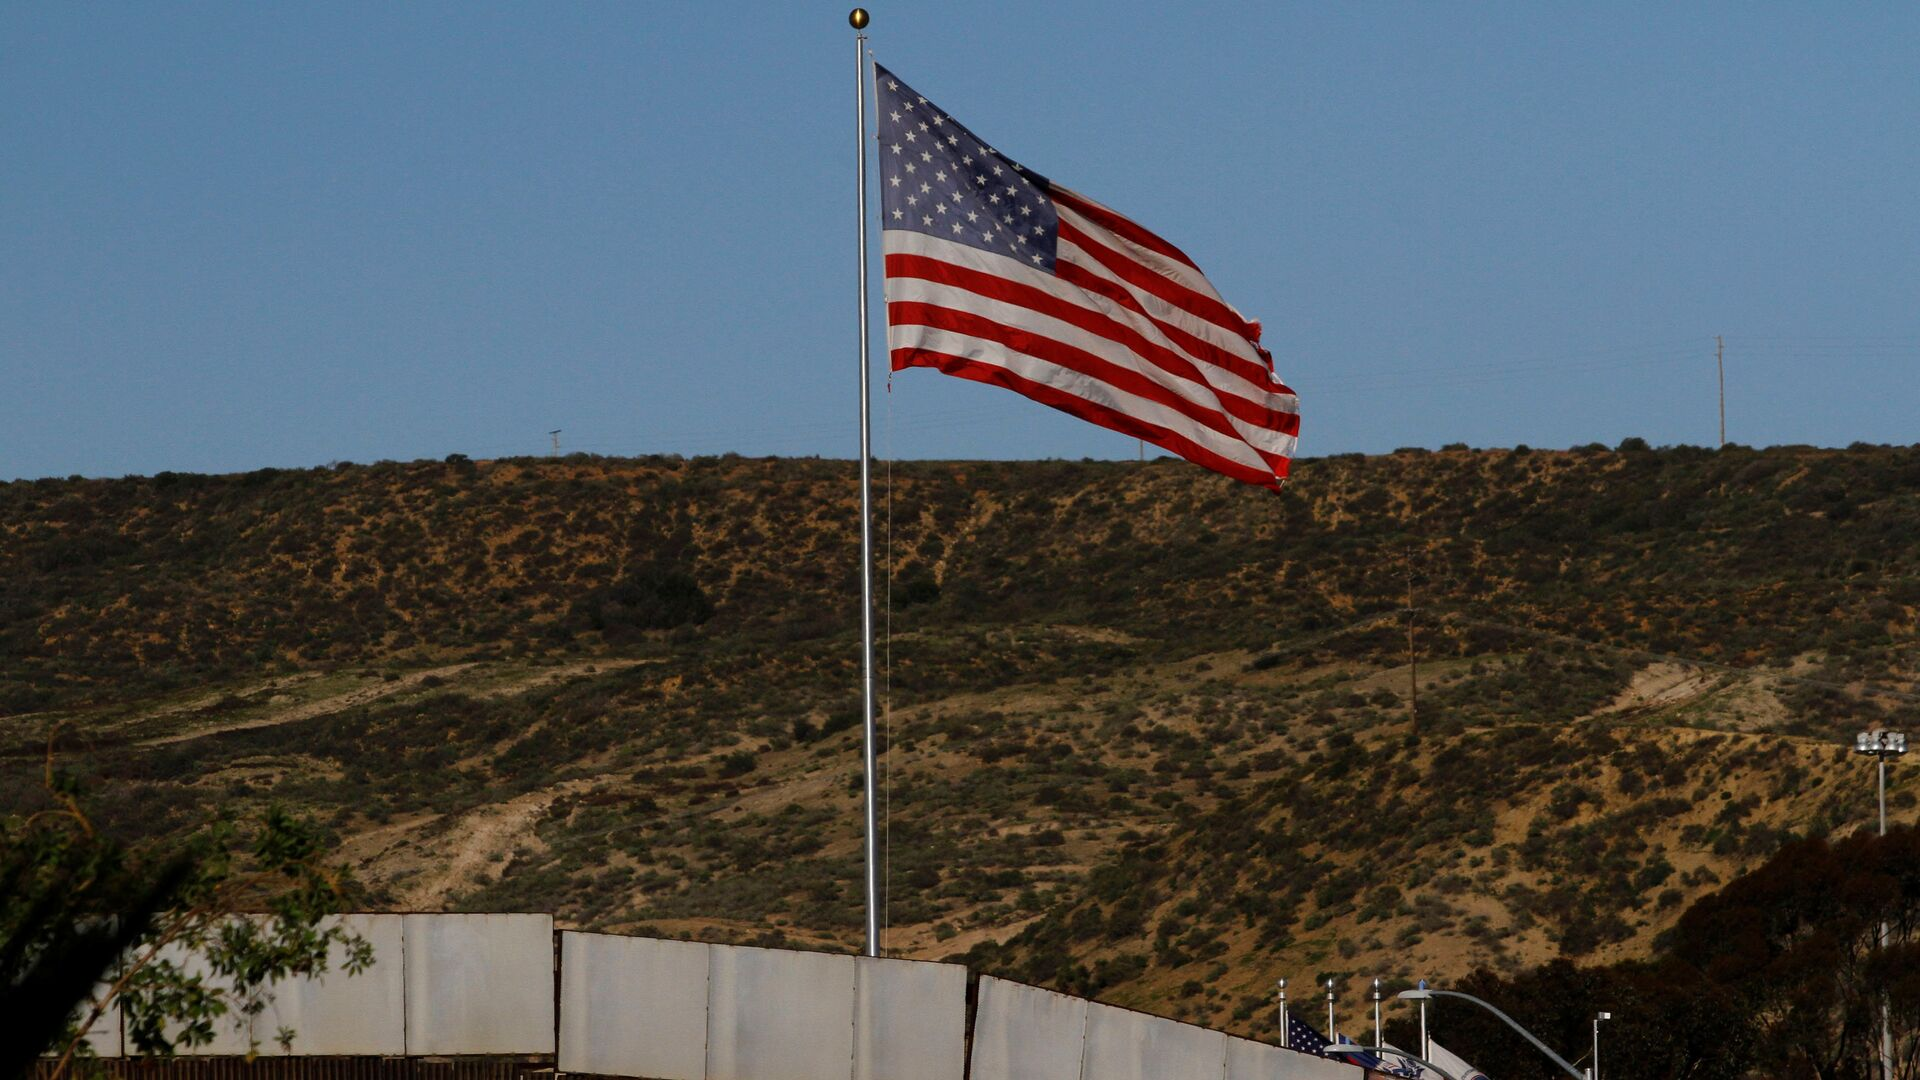 A U.S. flag is seen next to a section of the wall separating Mexico and the United States, in Tijuana, Mexico, January 28, 2017 - Sputnik Mundo, 1920, 13.10.2021